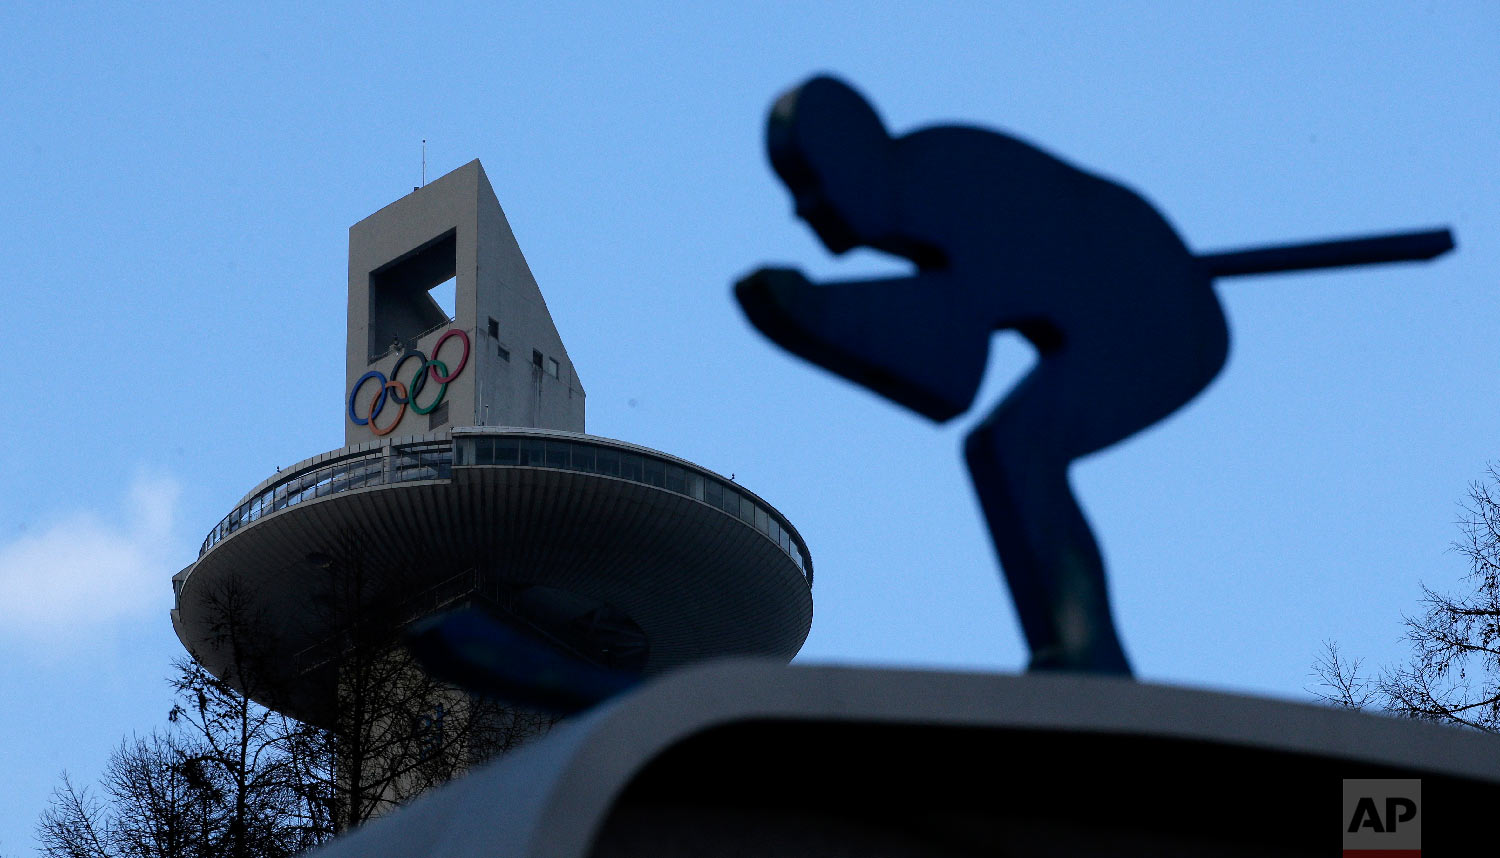 The tower of the Alpensia Ski Jumping Center rises beyond a sculpture of a skier at the 2018 Winter Olympics in Pyeongchang, South Korea, Friday, Feb. 2, 2018. (AP Photo/Charlie Riedel)